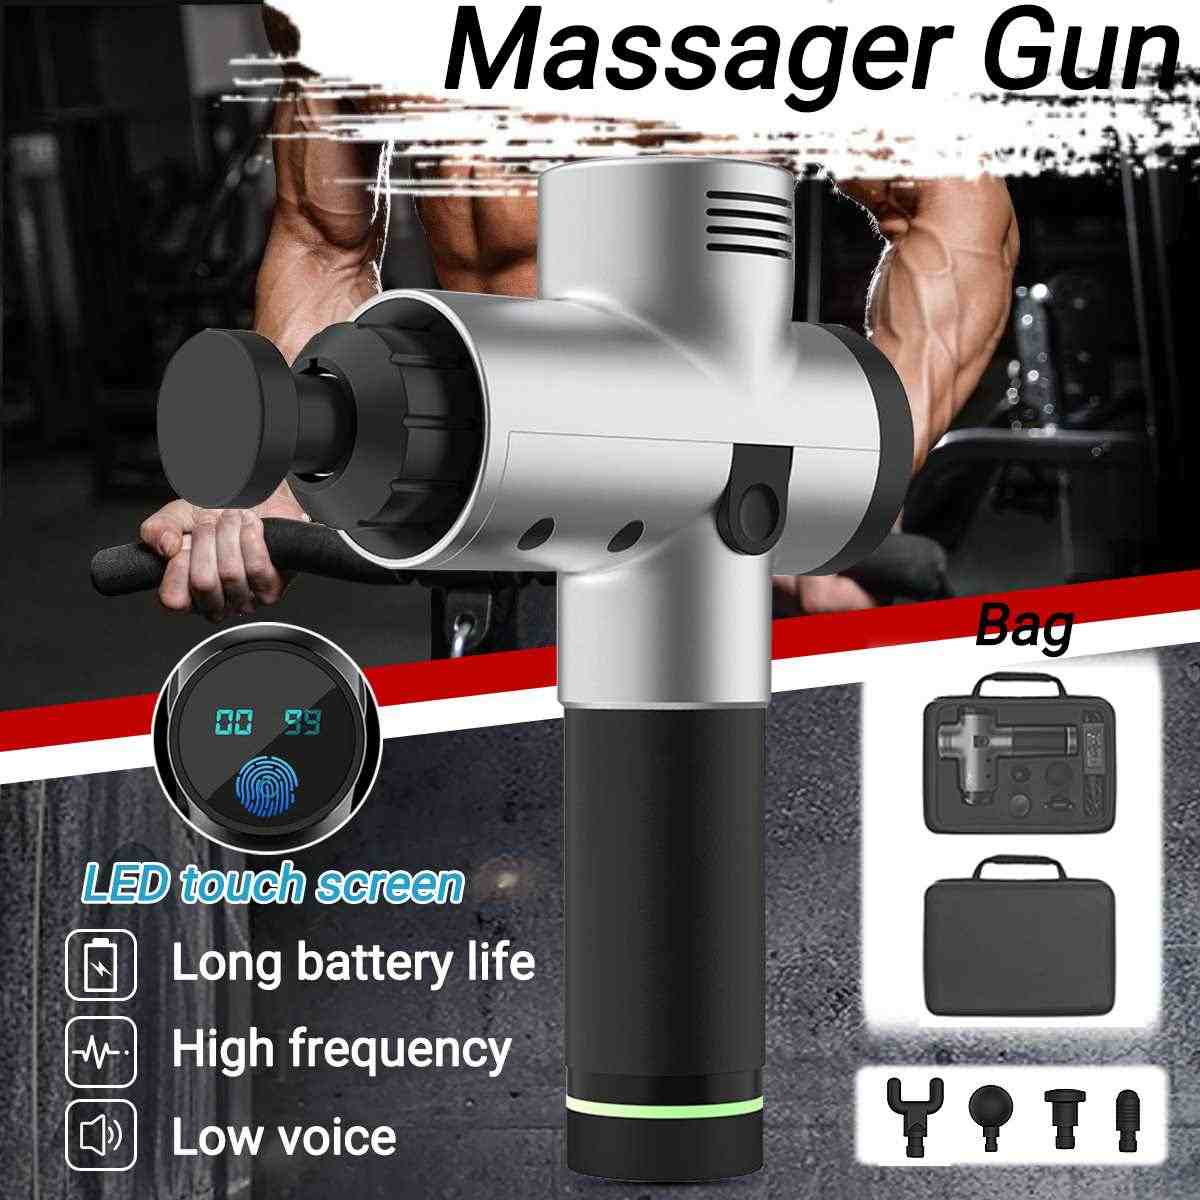 3600r 20 Gears Electronic Therapy Body Massage for Gun Low Noise LED  Massage Guns Body Muscles Relaxing Relief Pains +4 heads